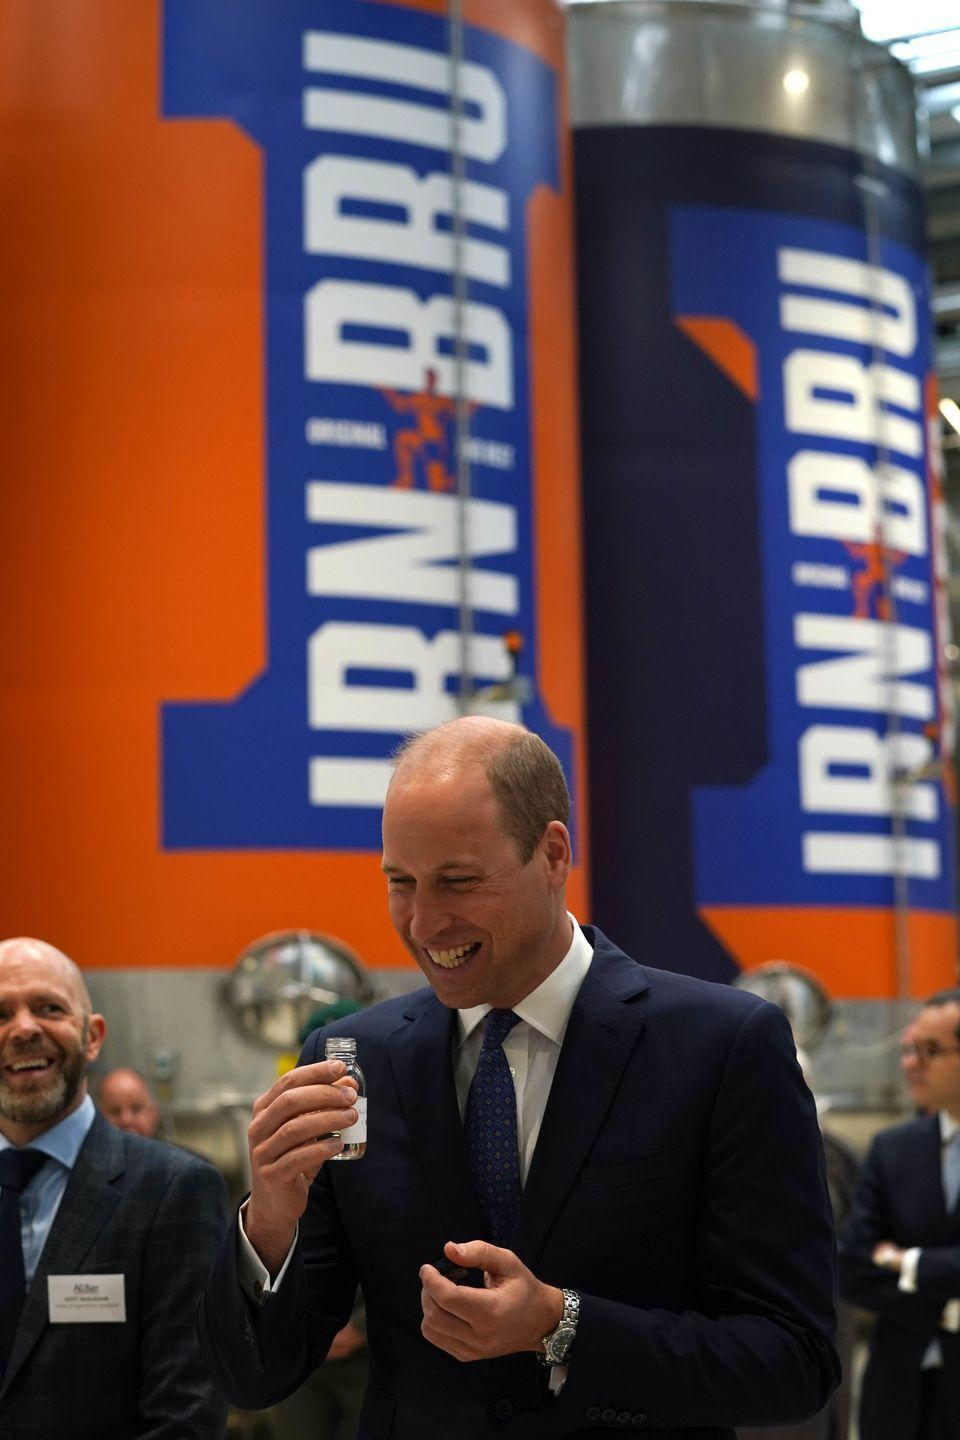 <p>William and the queen enjoy a taste of the Irn-Bru drink at the factory.</p>